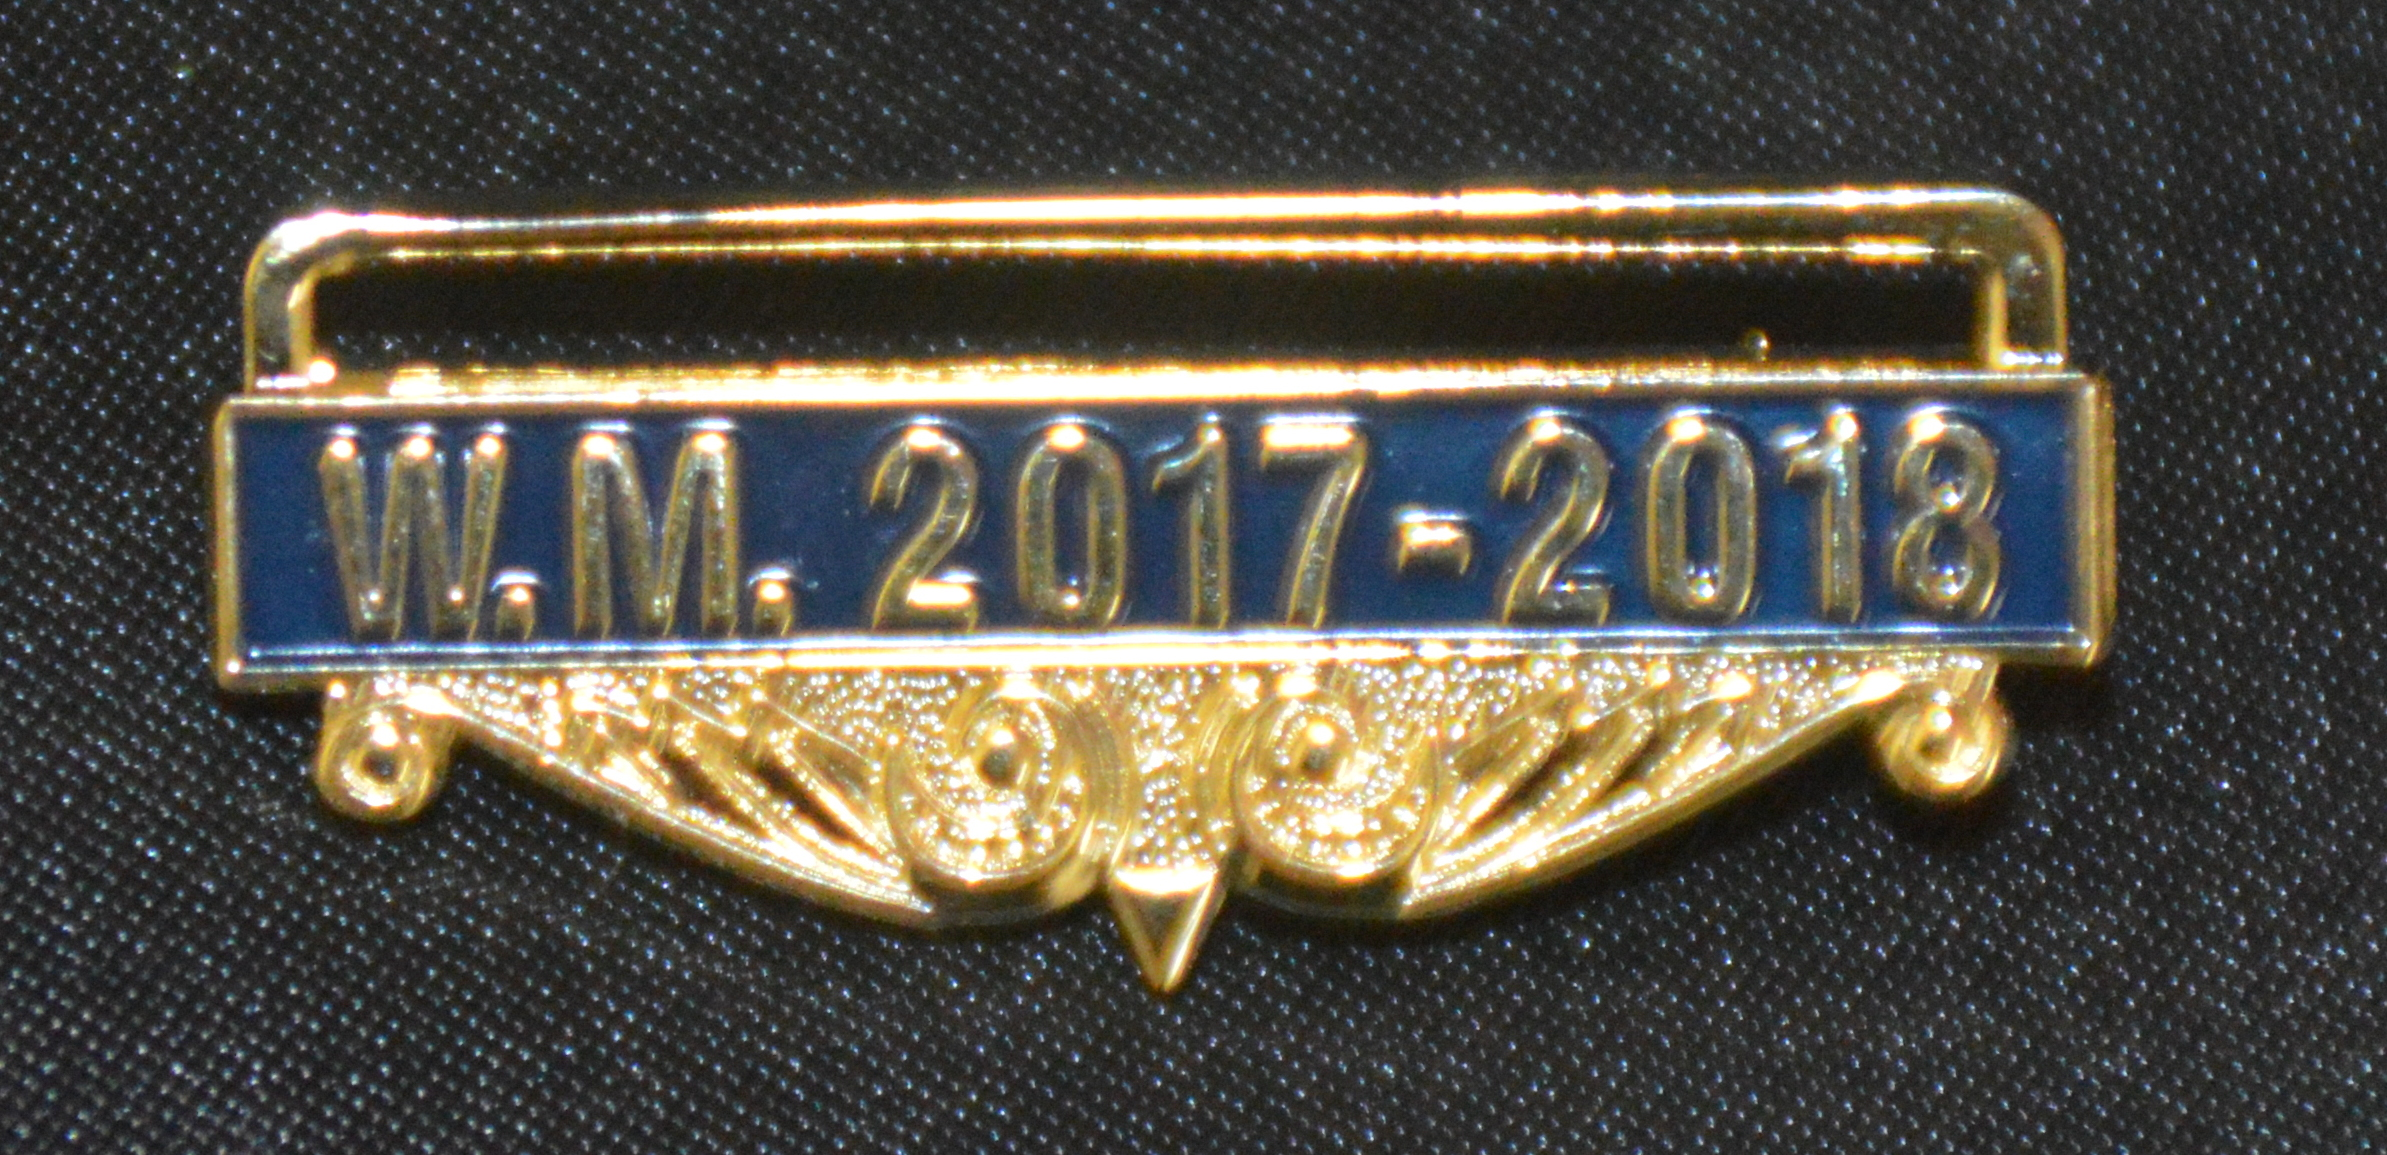 Breast Jewel Lower Date Bar - WM 2017-2018 - Blue Enamel